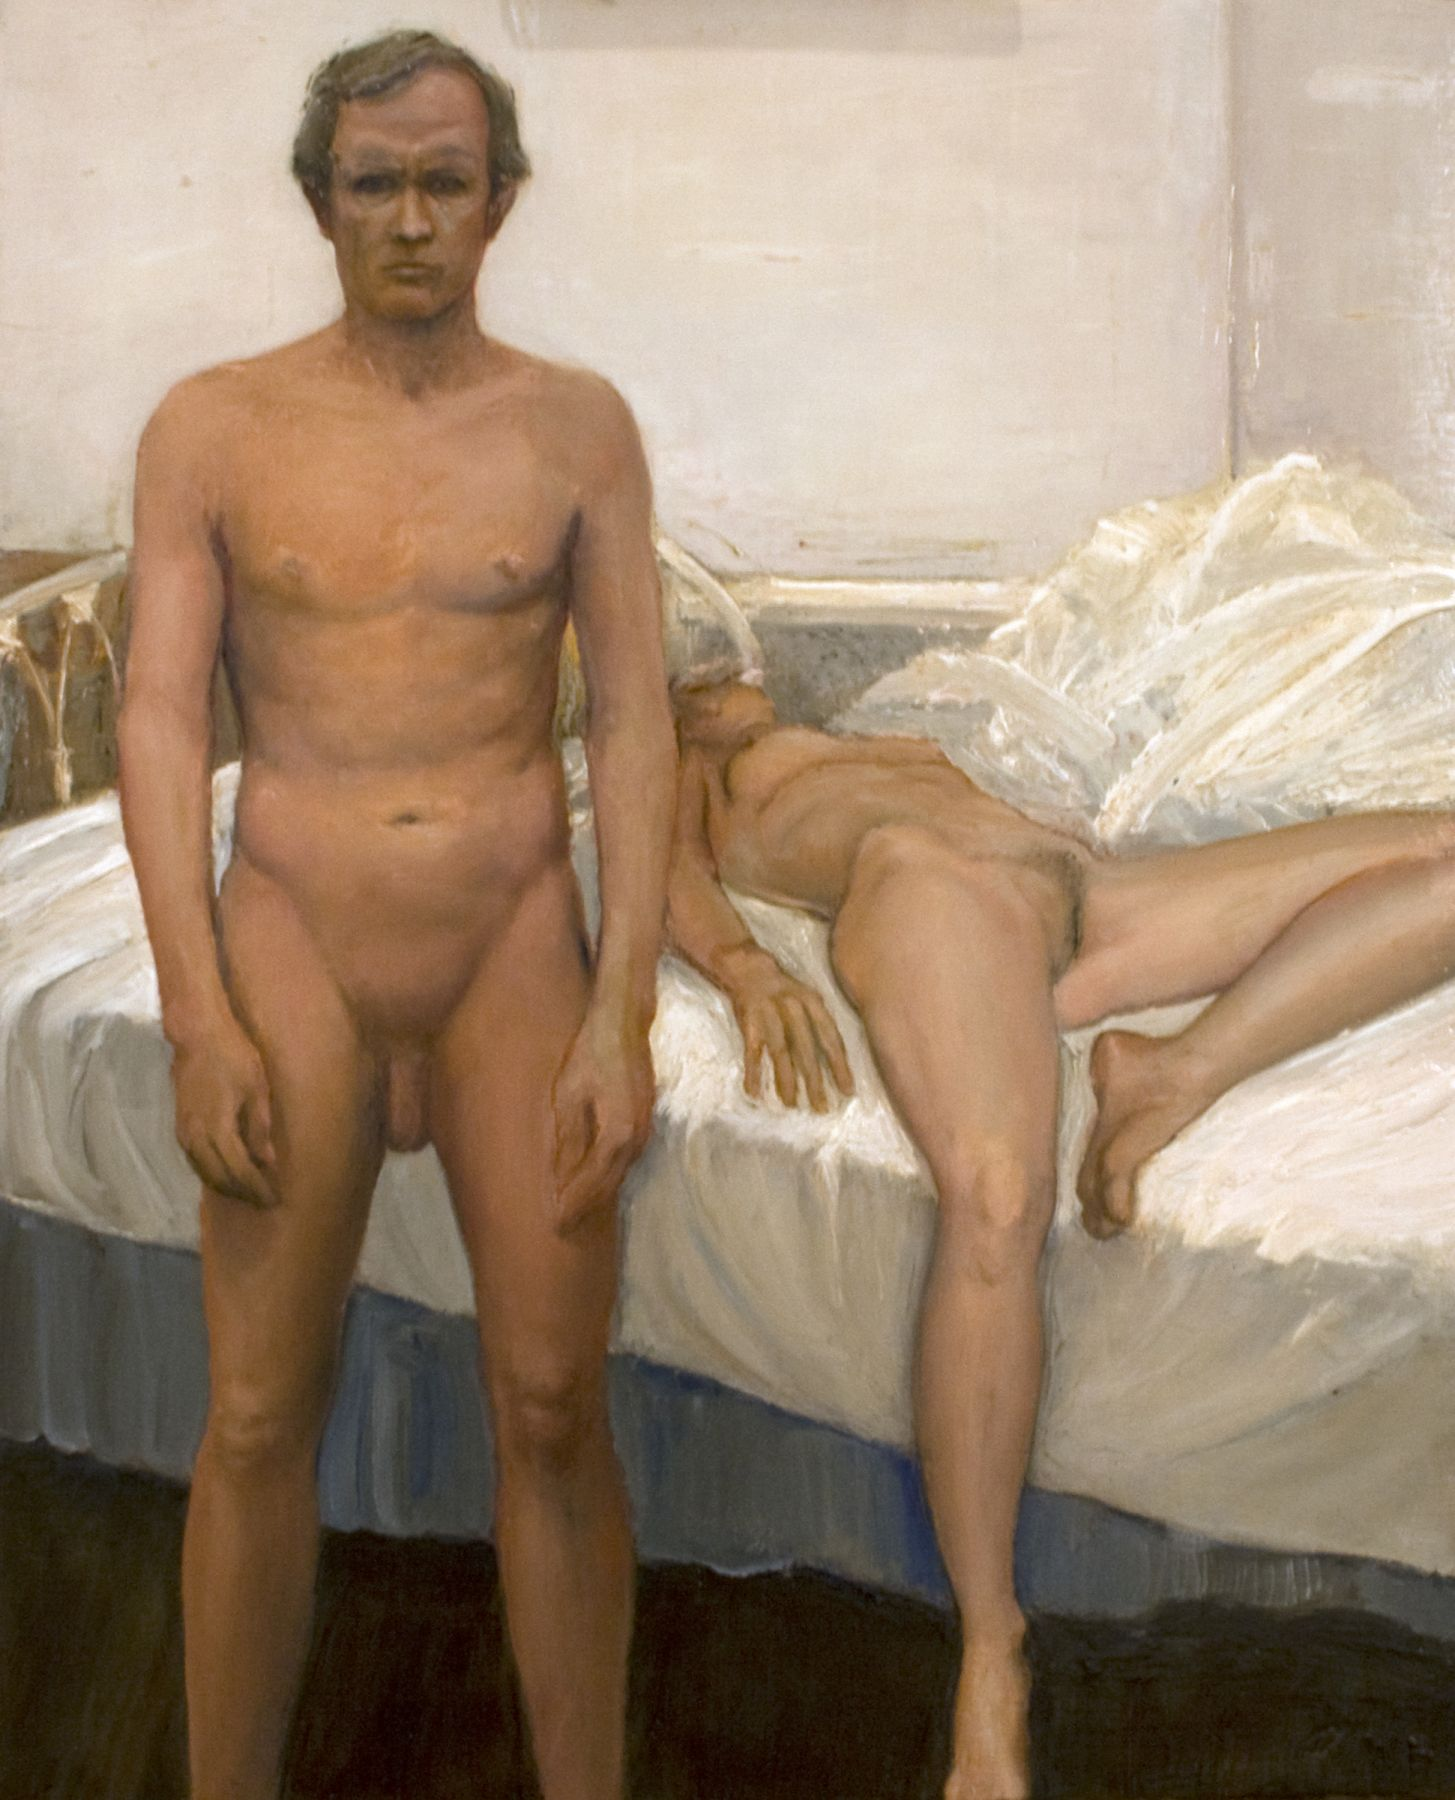 william beckman, Bed Study #2 (Study for Studio 4), 1996, oil on canvas, 15 x 12 inches